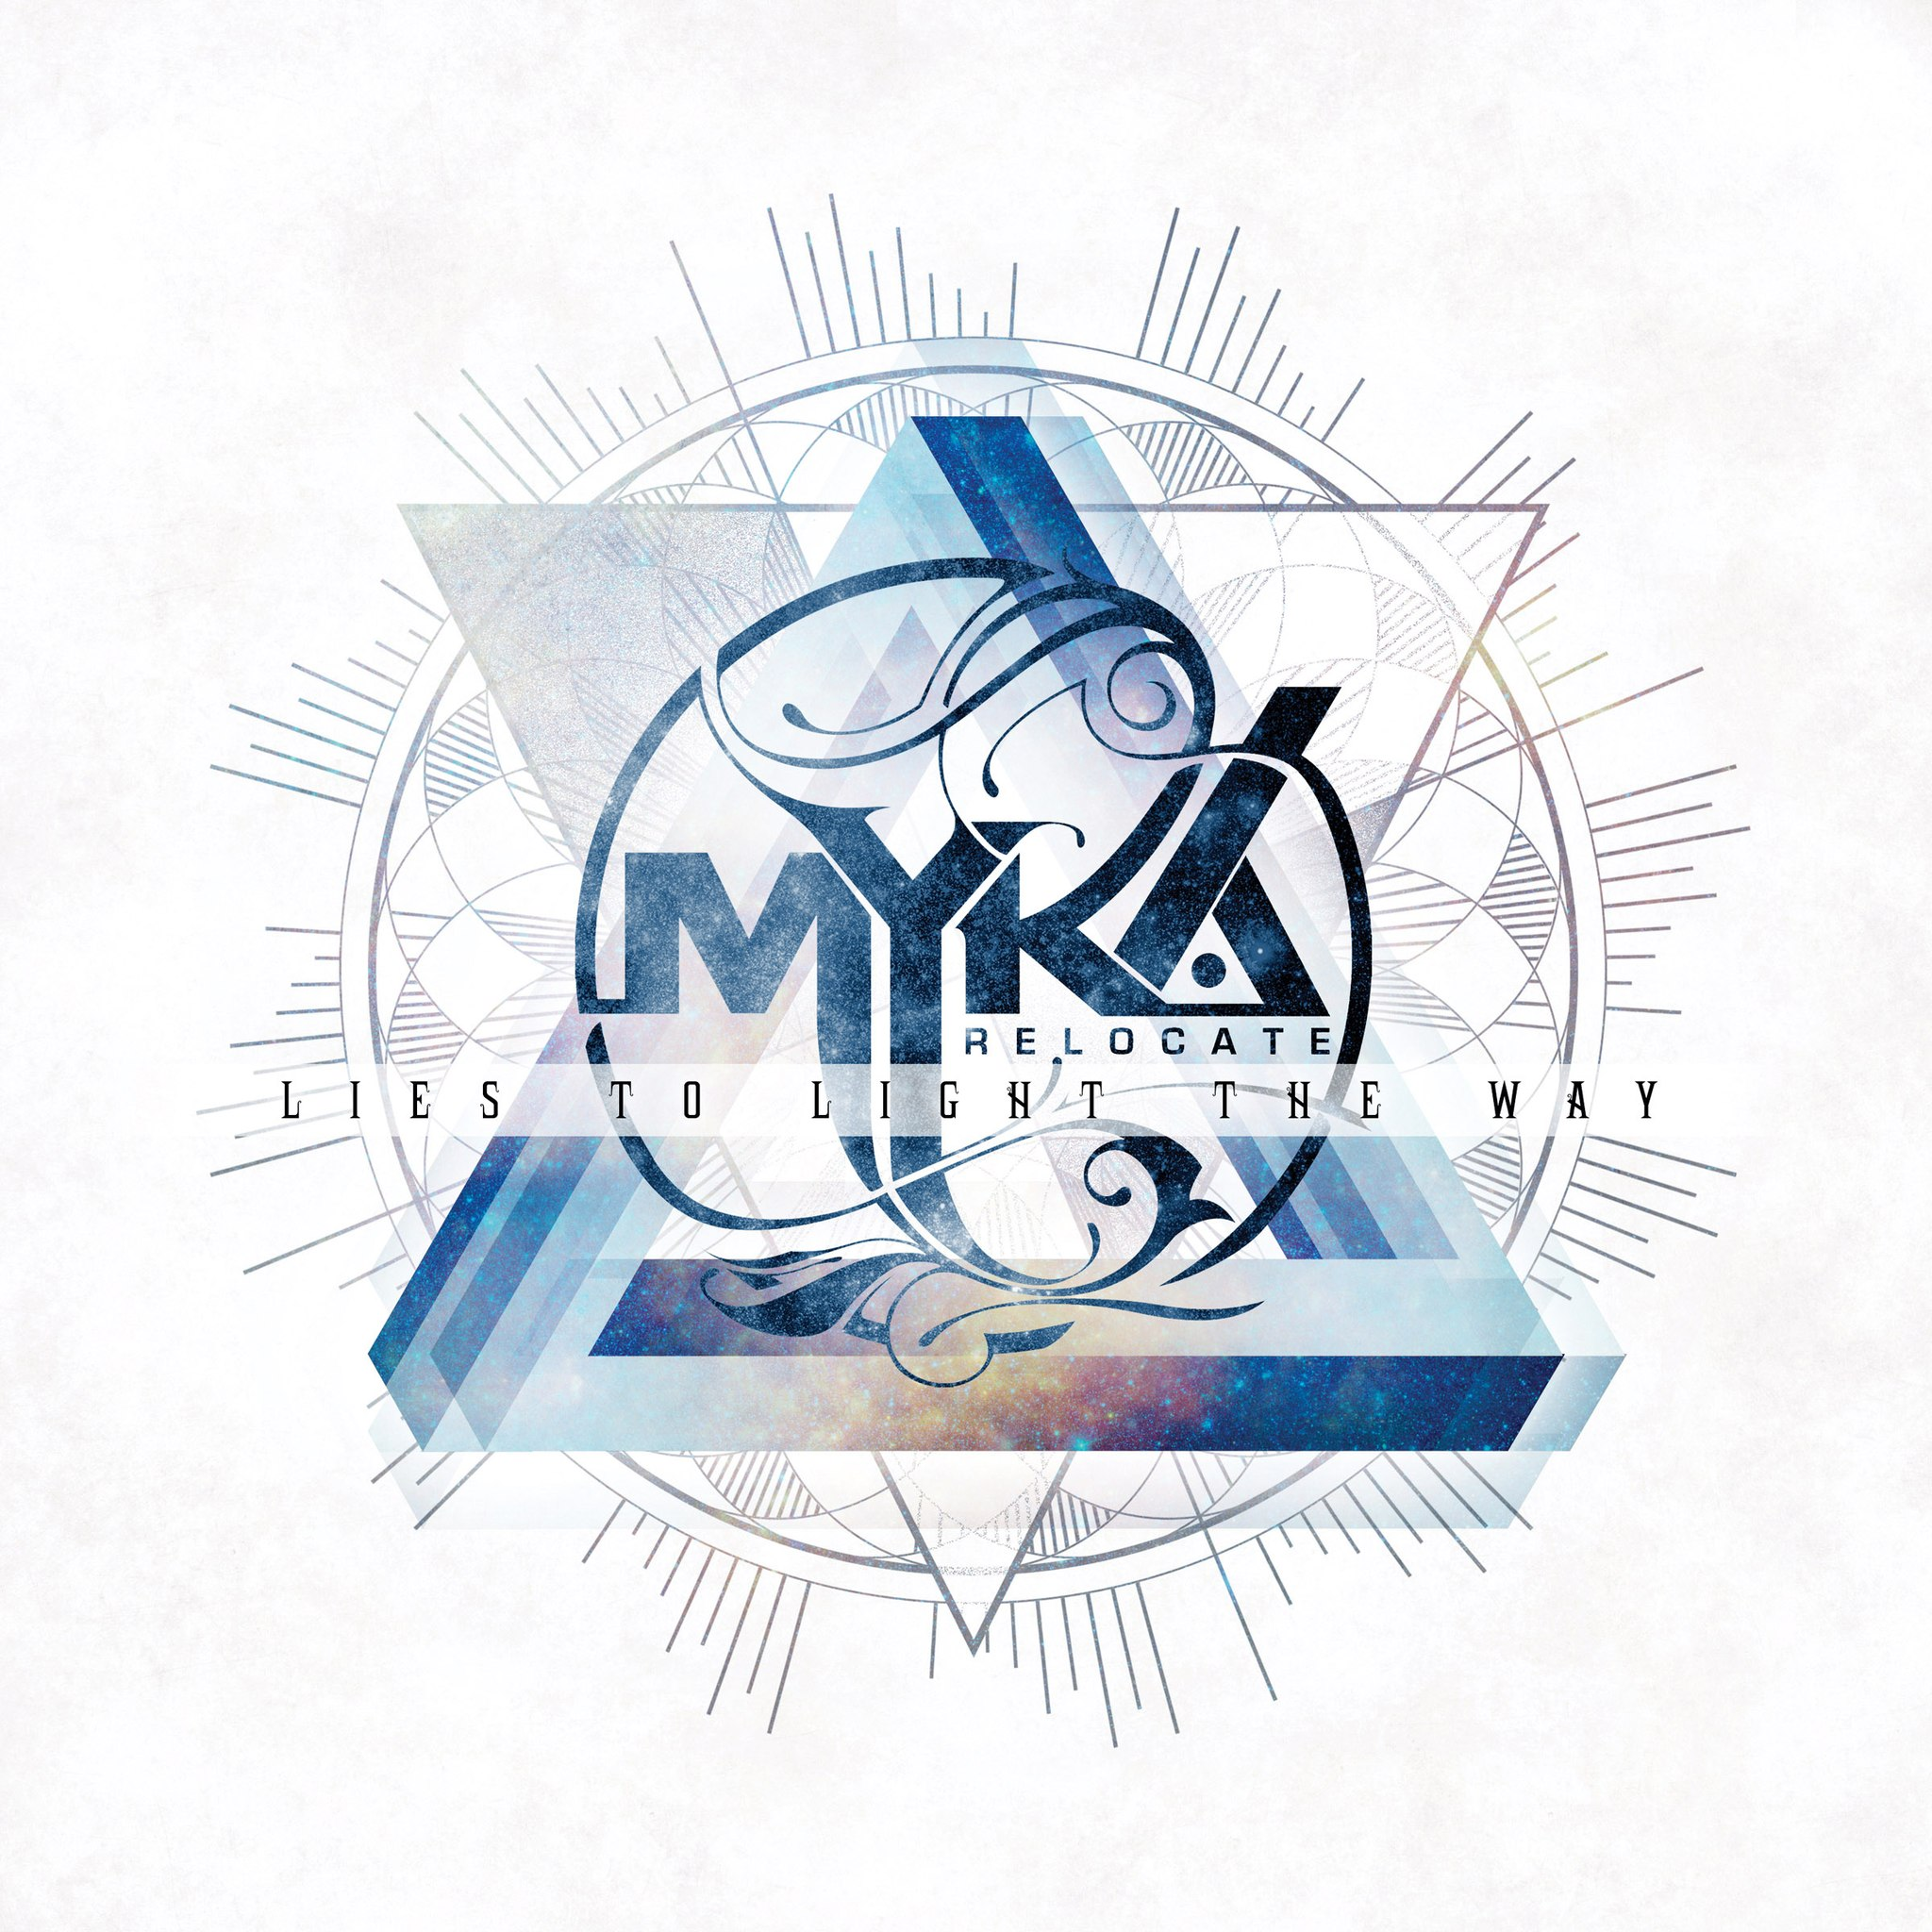 Myka, Relocate - Lies To Light the Way (2013)